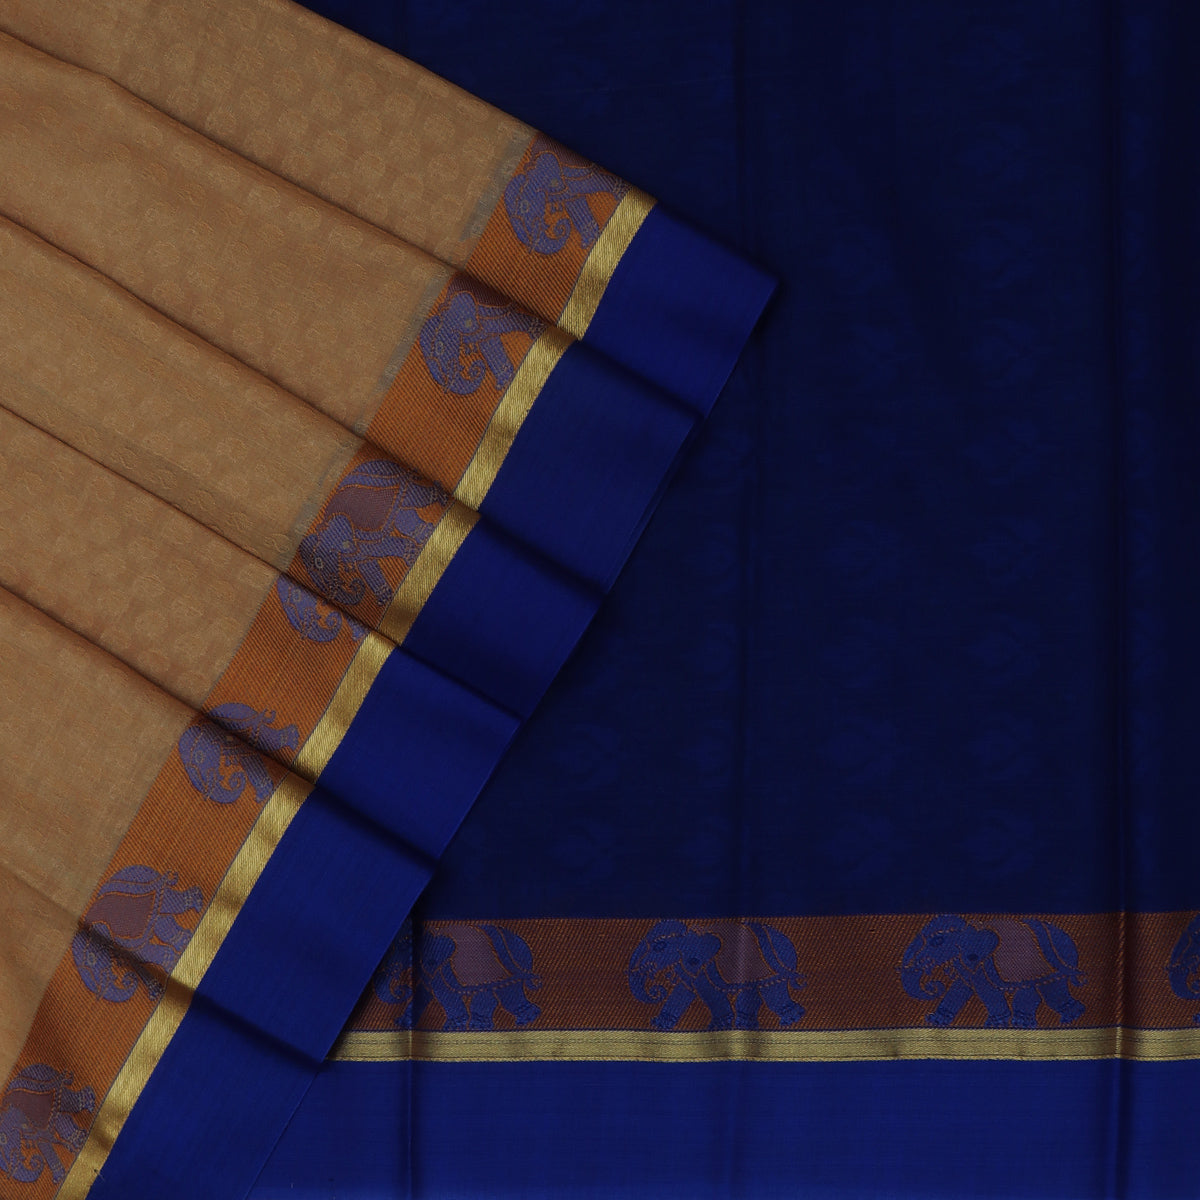 Kora silk saree Chikoo and Blue with Elephant border for Rs.Rs. 2320.00 | Kora Sarees by Prashanti Sarees